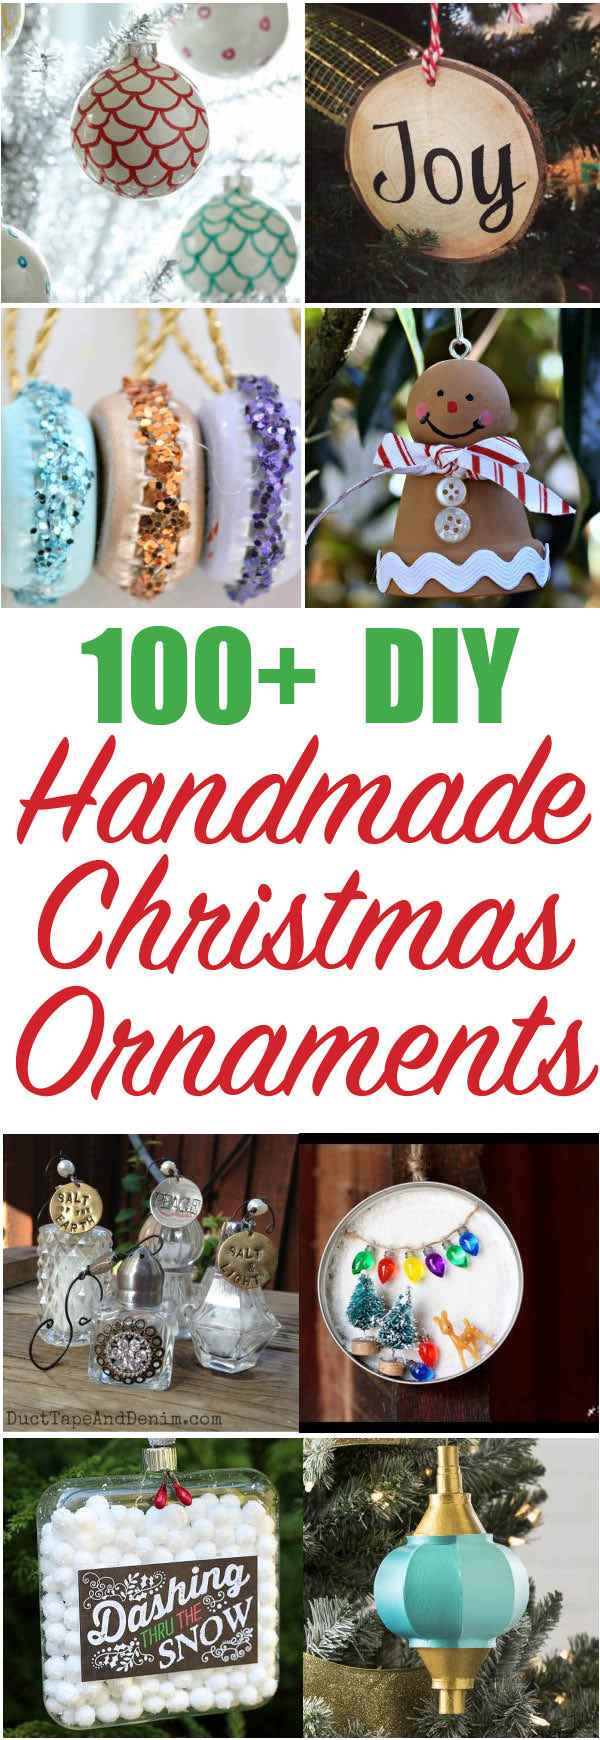 Over 100 beautiful Handmade Christmas Ornaments - so many great ways to decorate the tree!